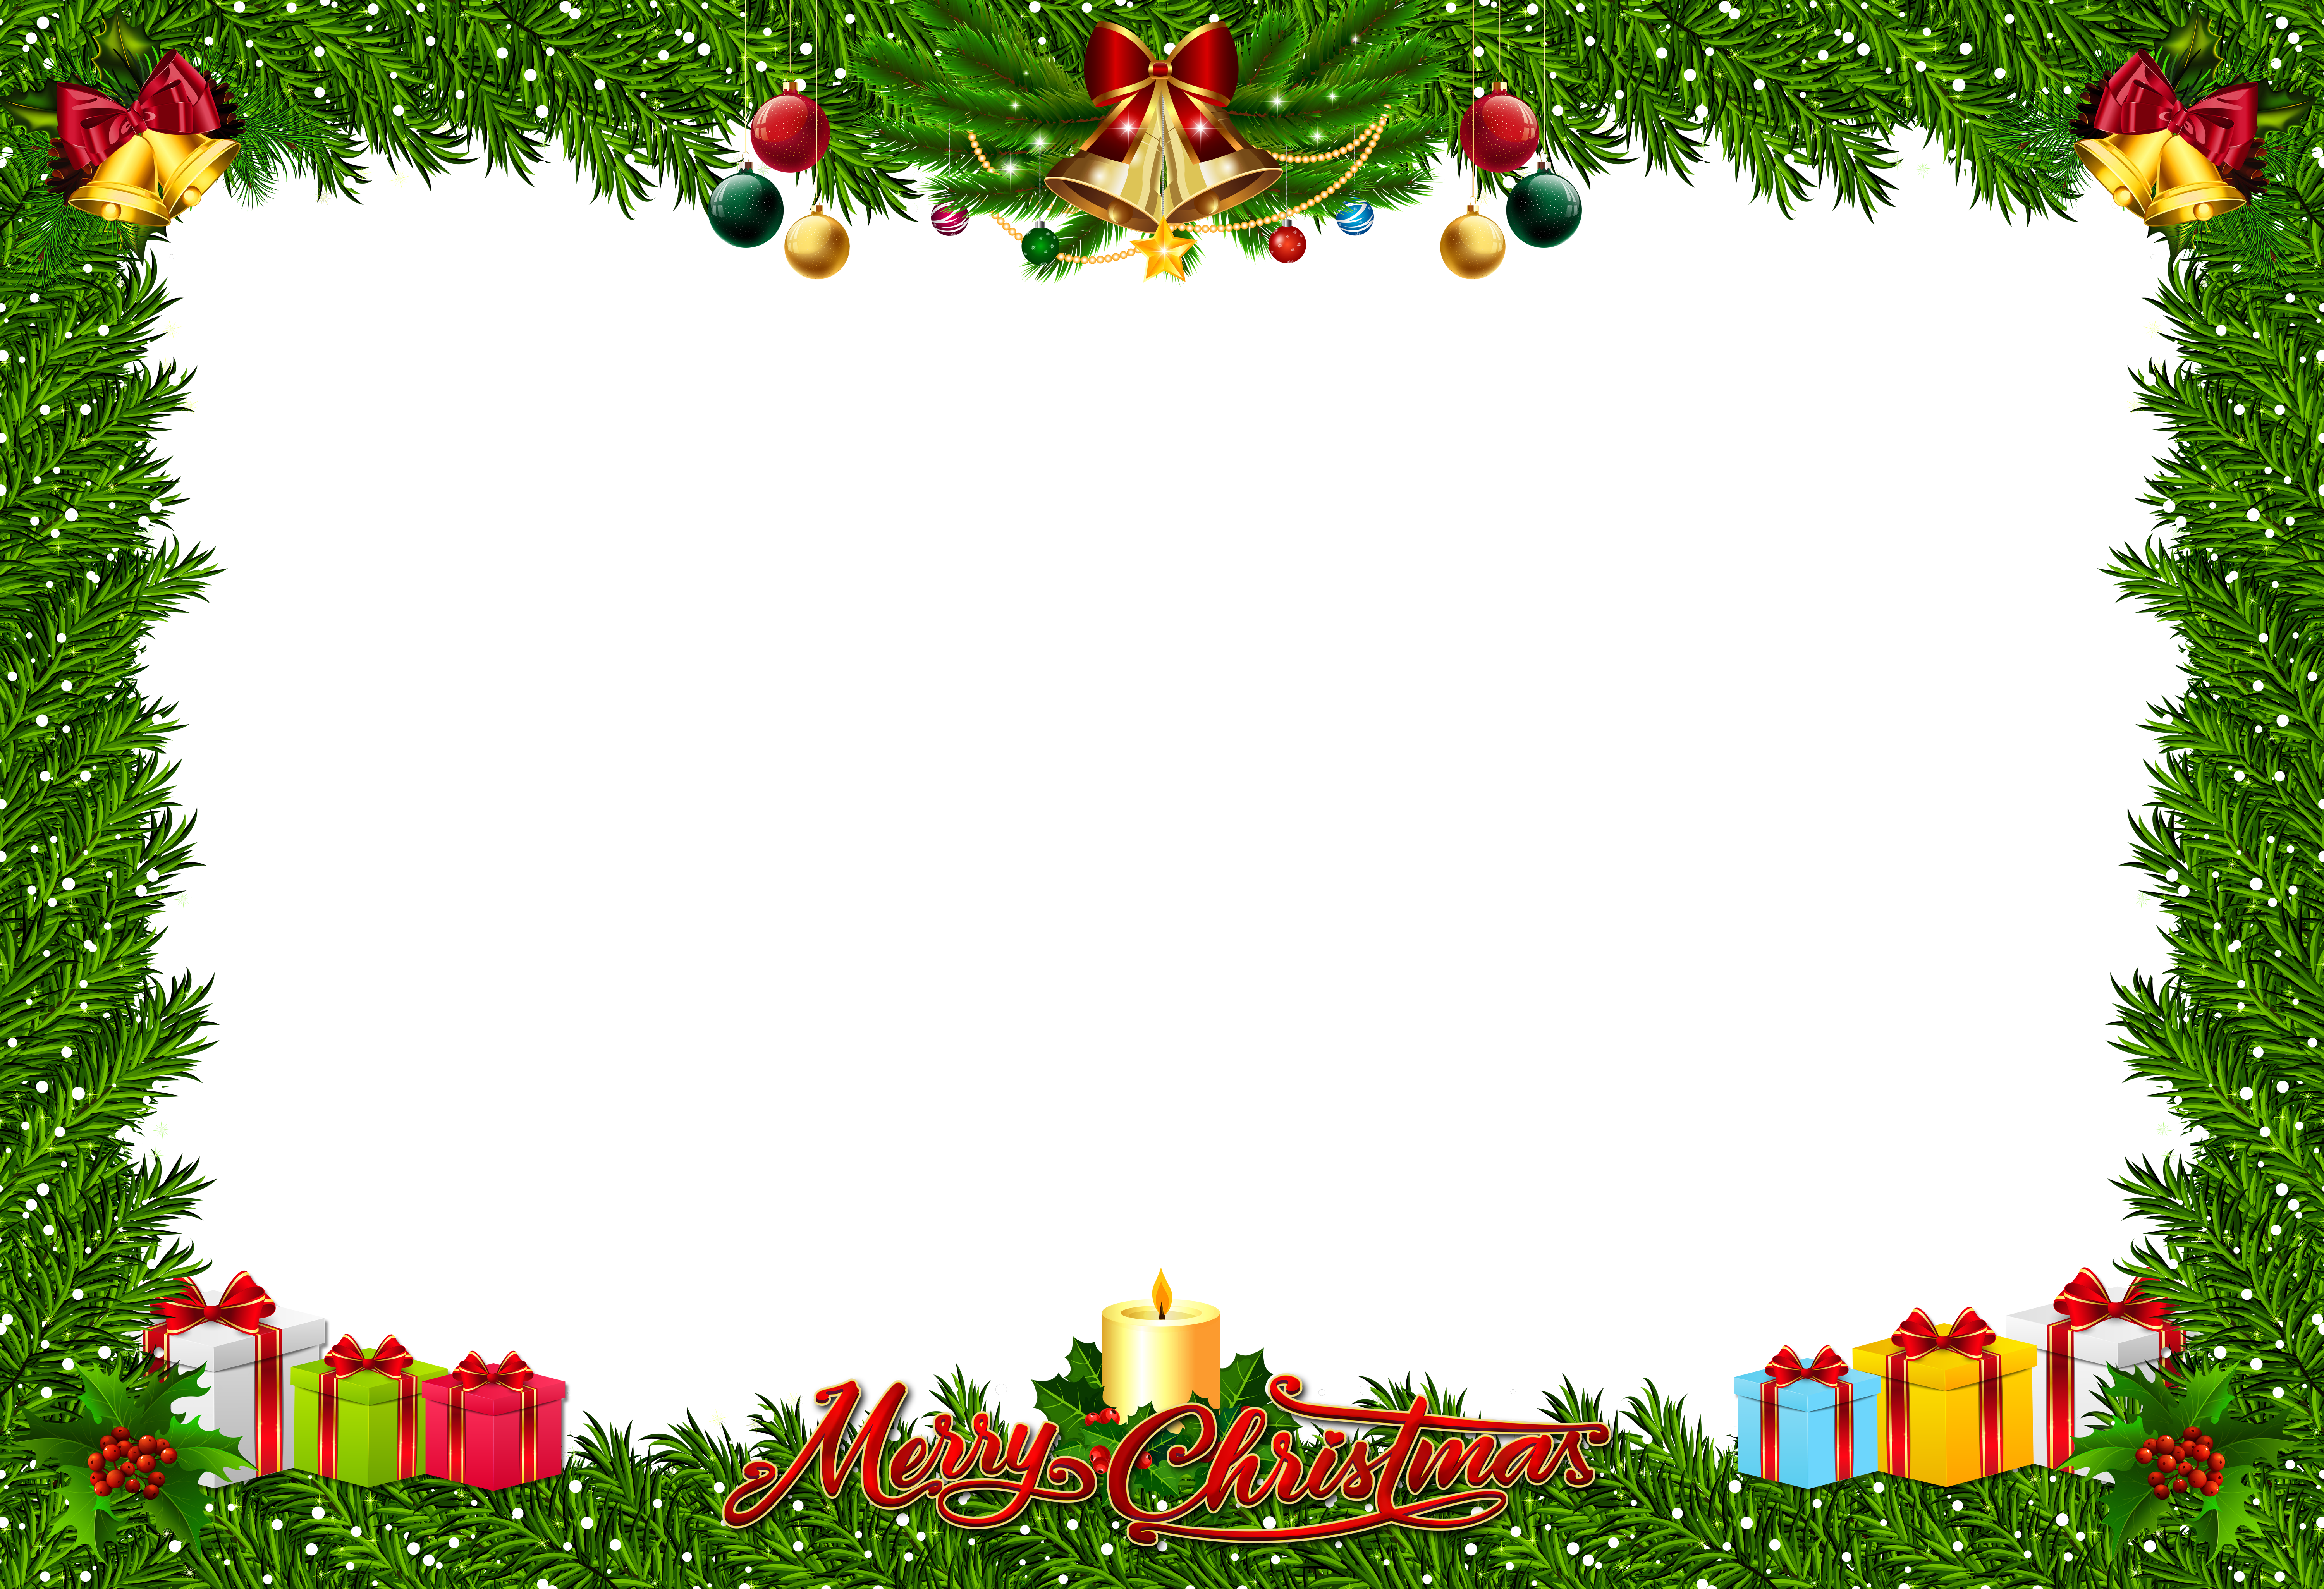 Christmasframe clipart image transparent stock Christmas Frame Transparent PNG Clip Art | Gallery Yopriceville ... image transparent stock